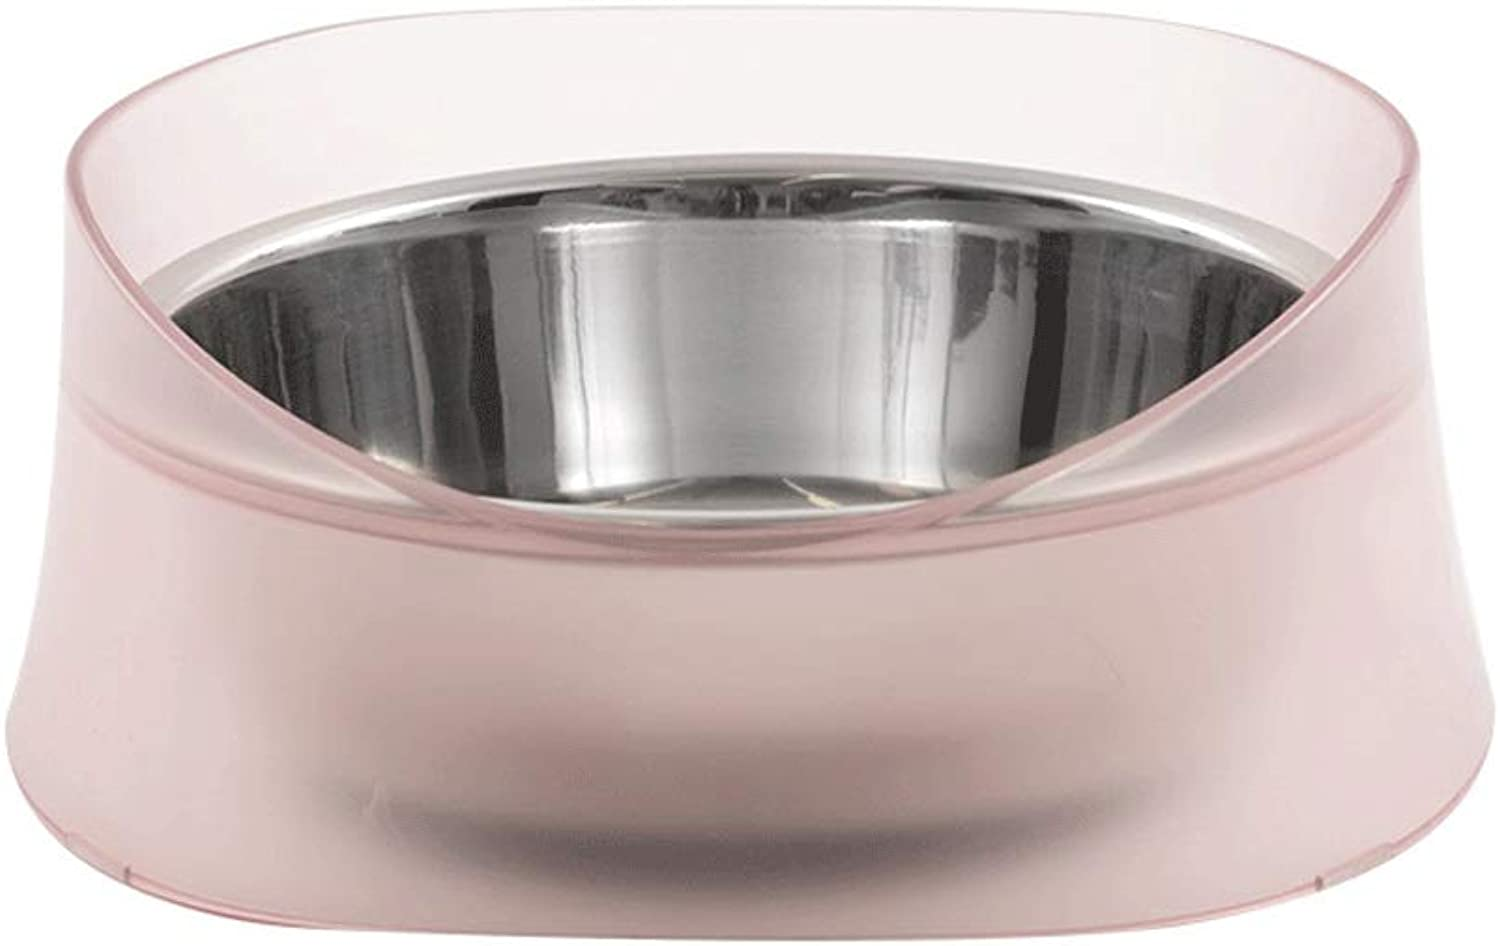 5GHjkj Stainless Steel Pet Bowl Dog LeakProof Bowl Large Single Bowl Rice Bowl NonSlip ShatterResistant Removable Large and Small Dogs Pet Supplies (color   Pink)